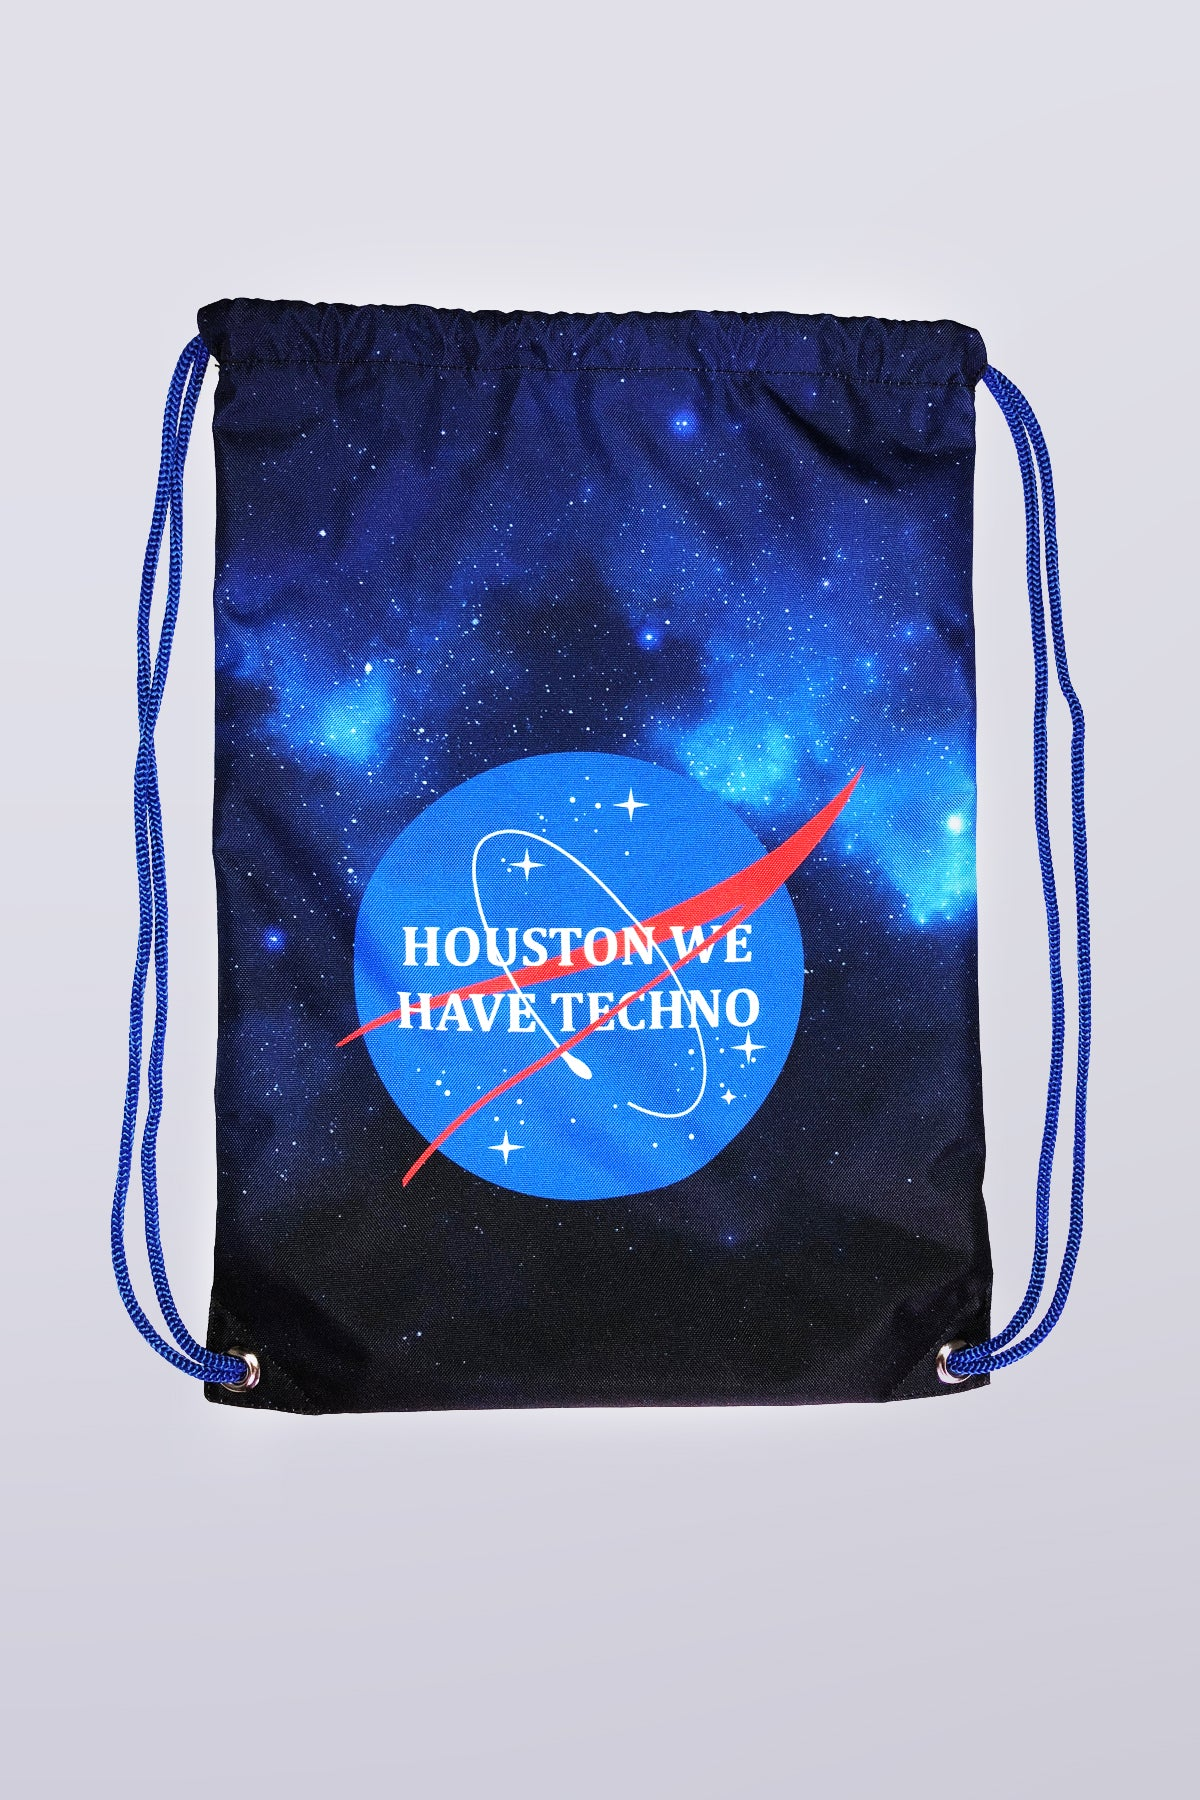 Houston, We Have Techno Backpacks